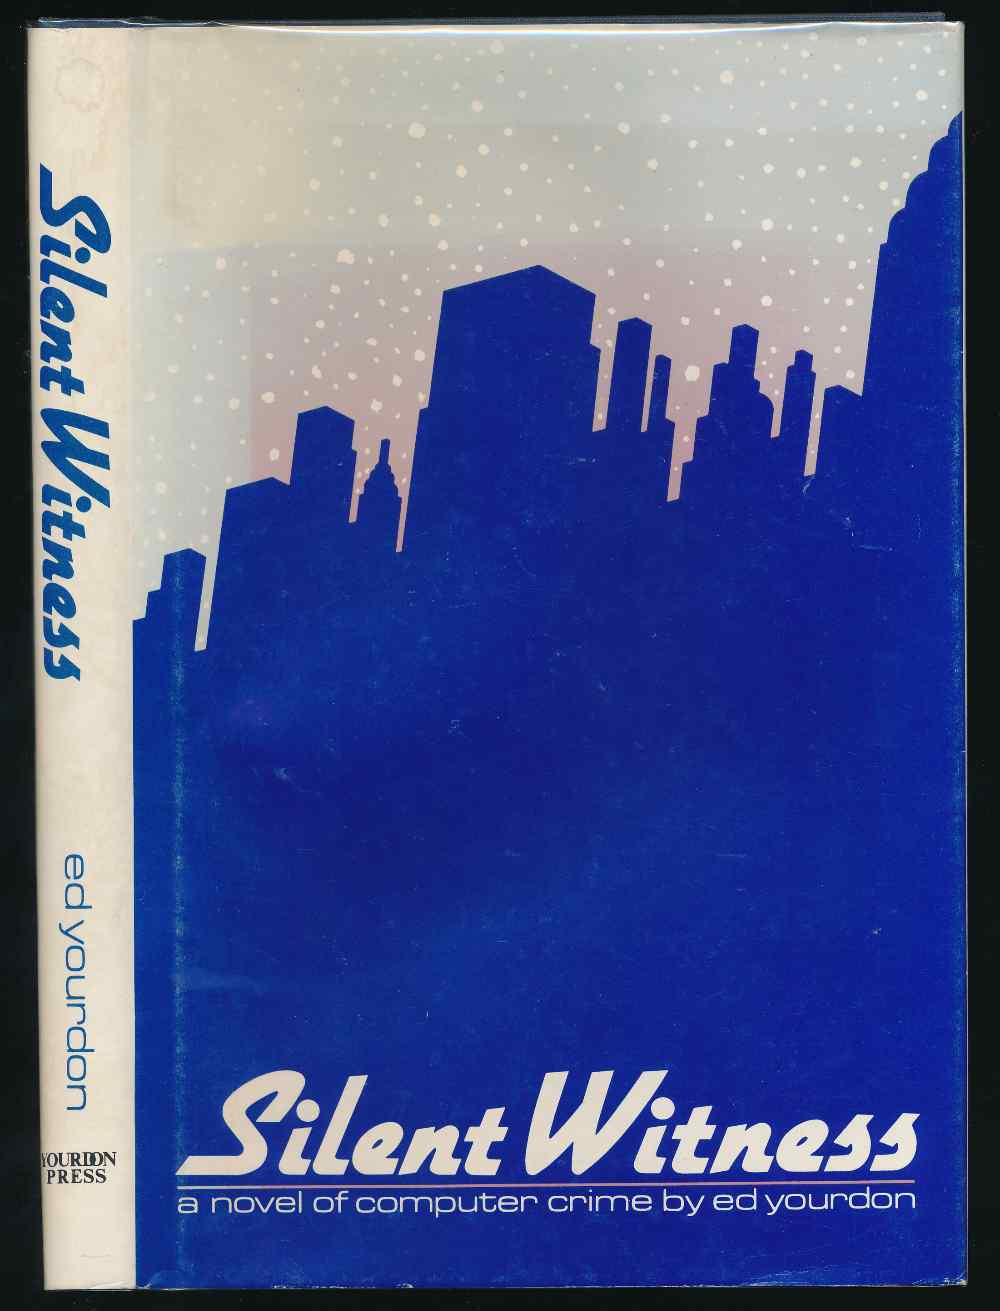 Silent witness: a novel of computer crime